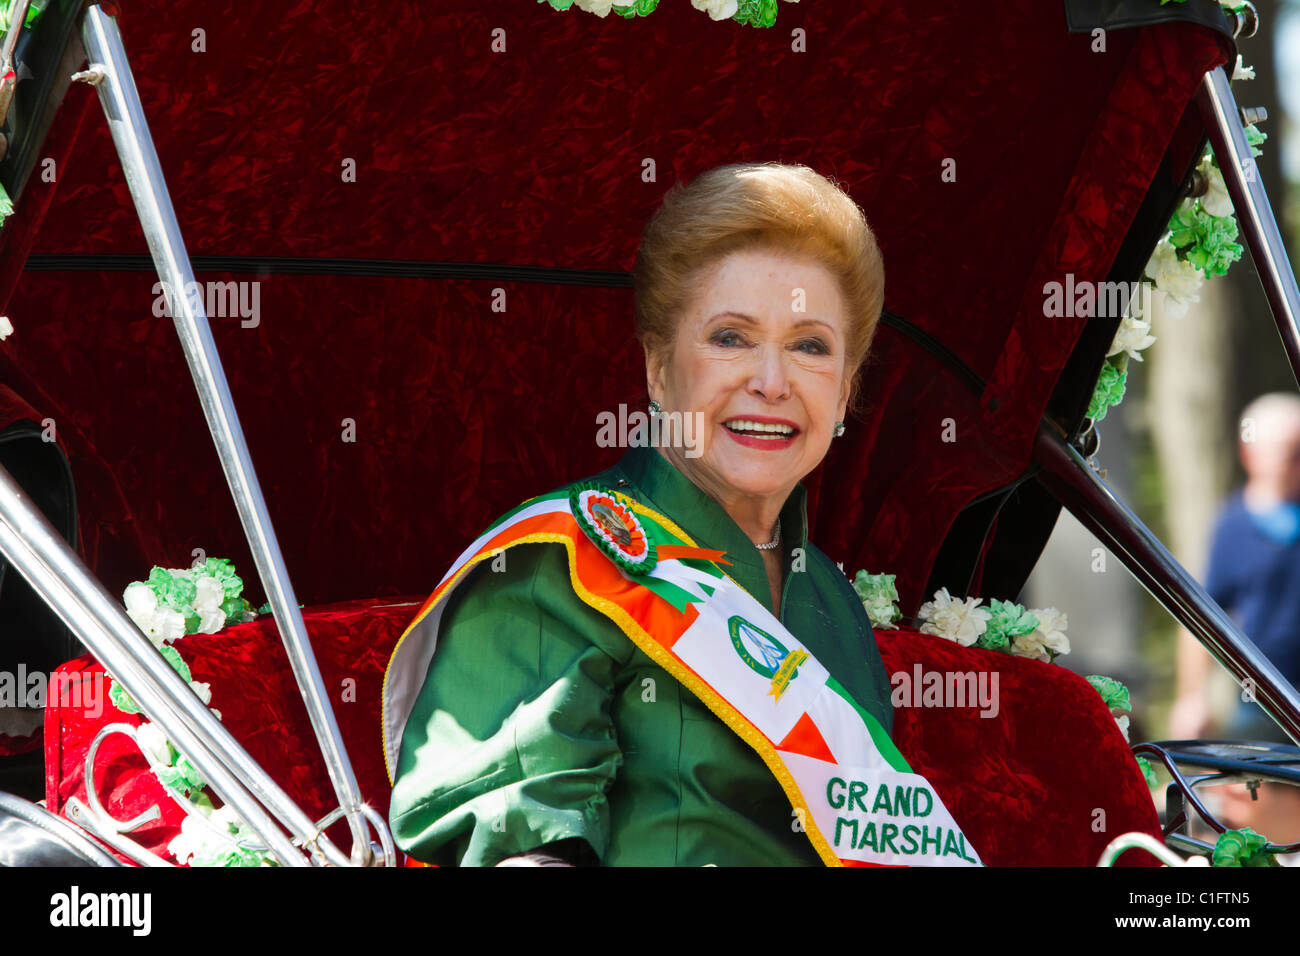 Author Mary Higgins Clark, Grand Marshall of the 250th Annual St. Patrick's Day Parade in New York City - Stock Image